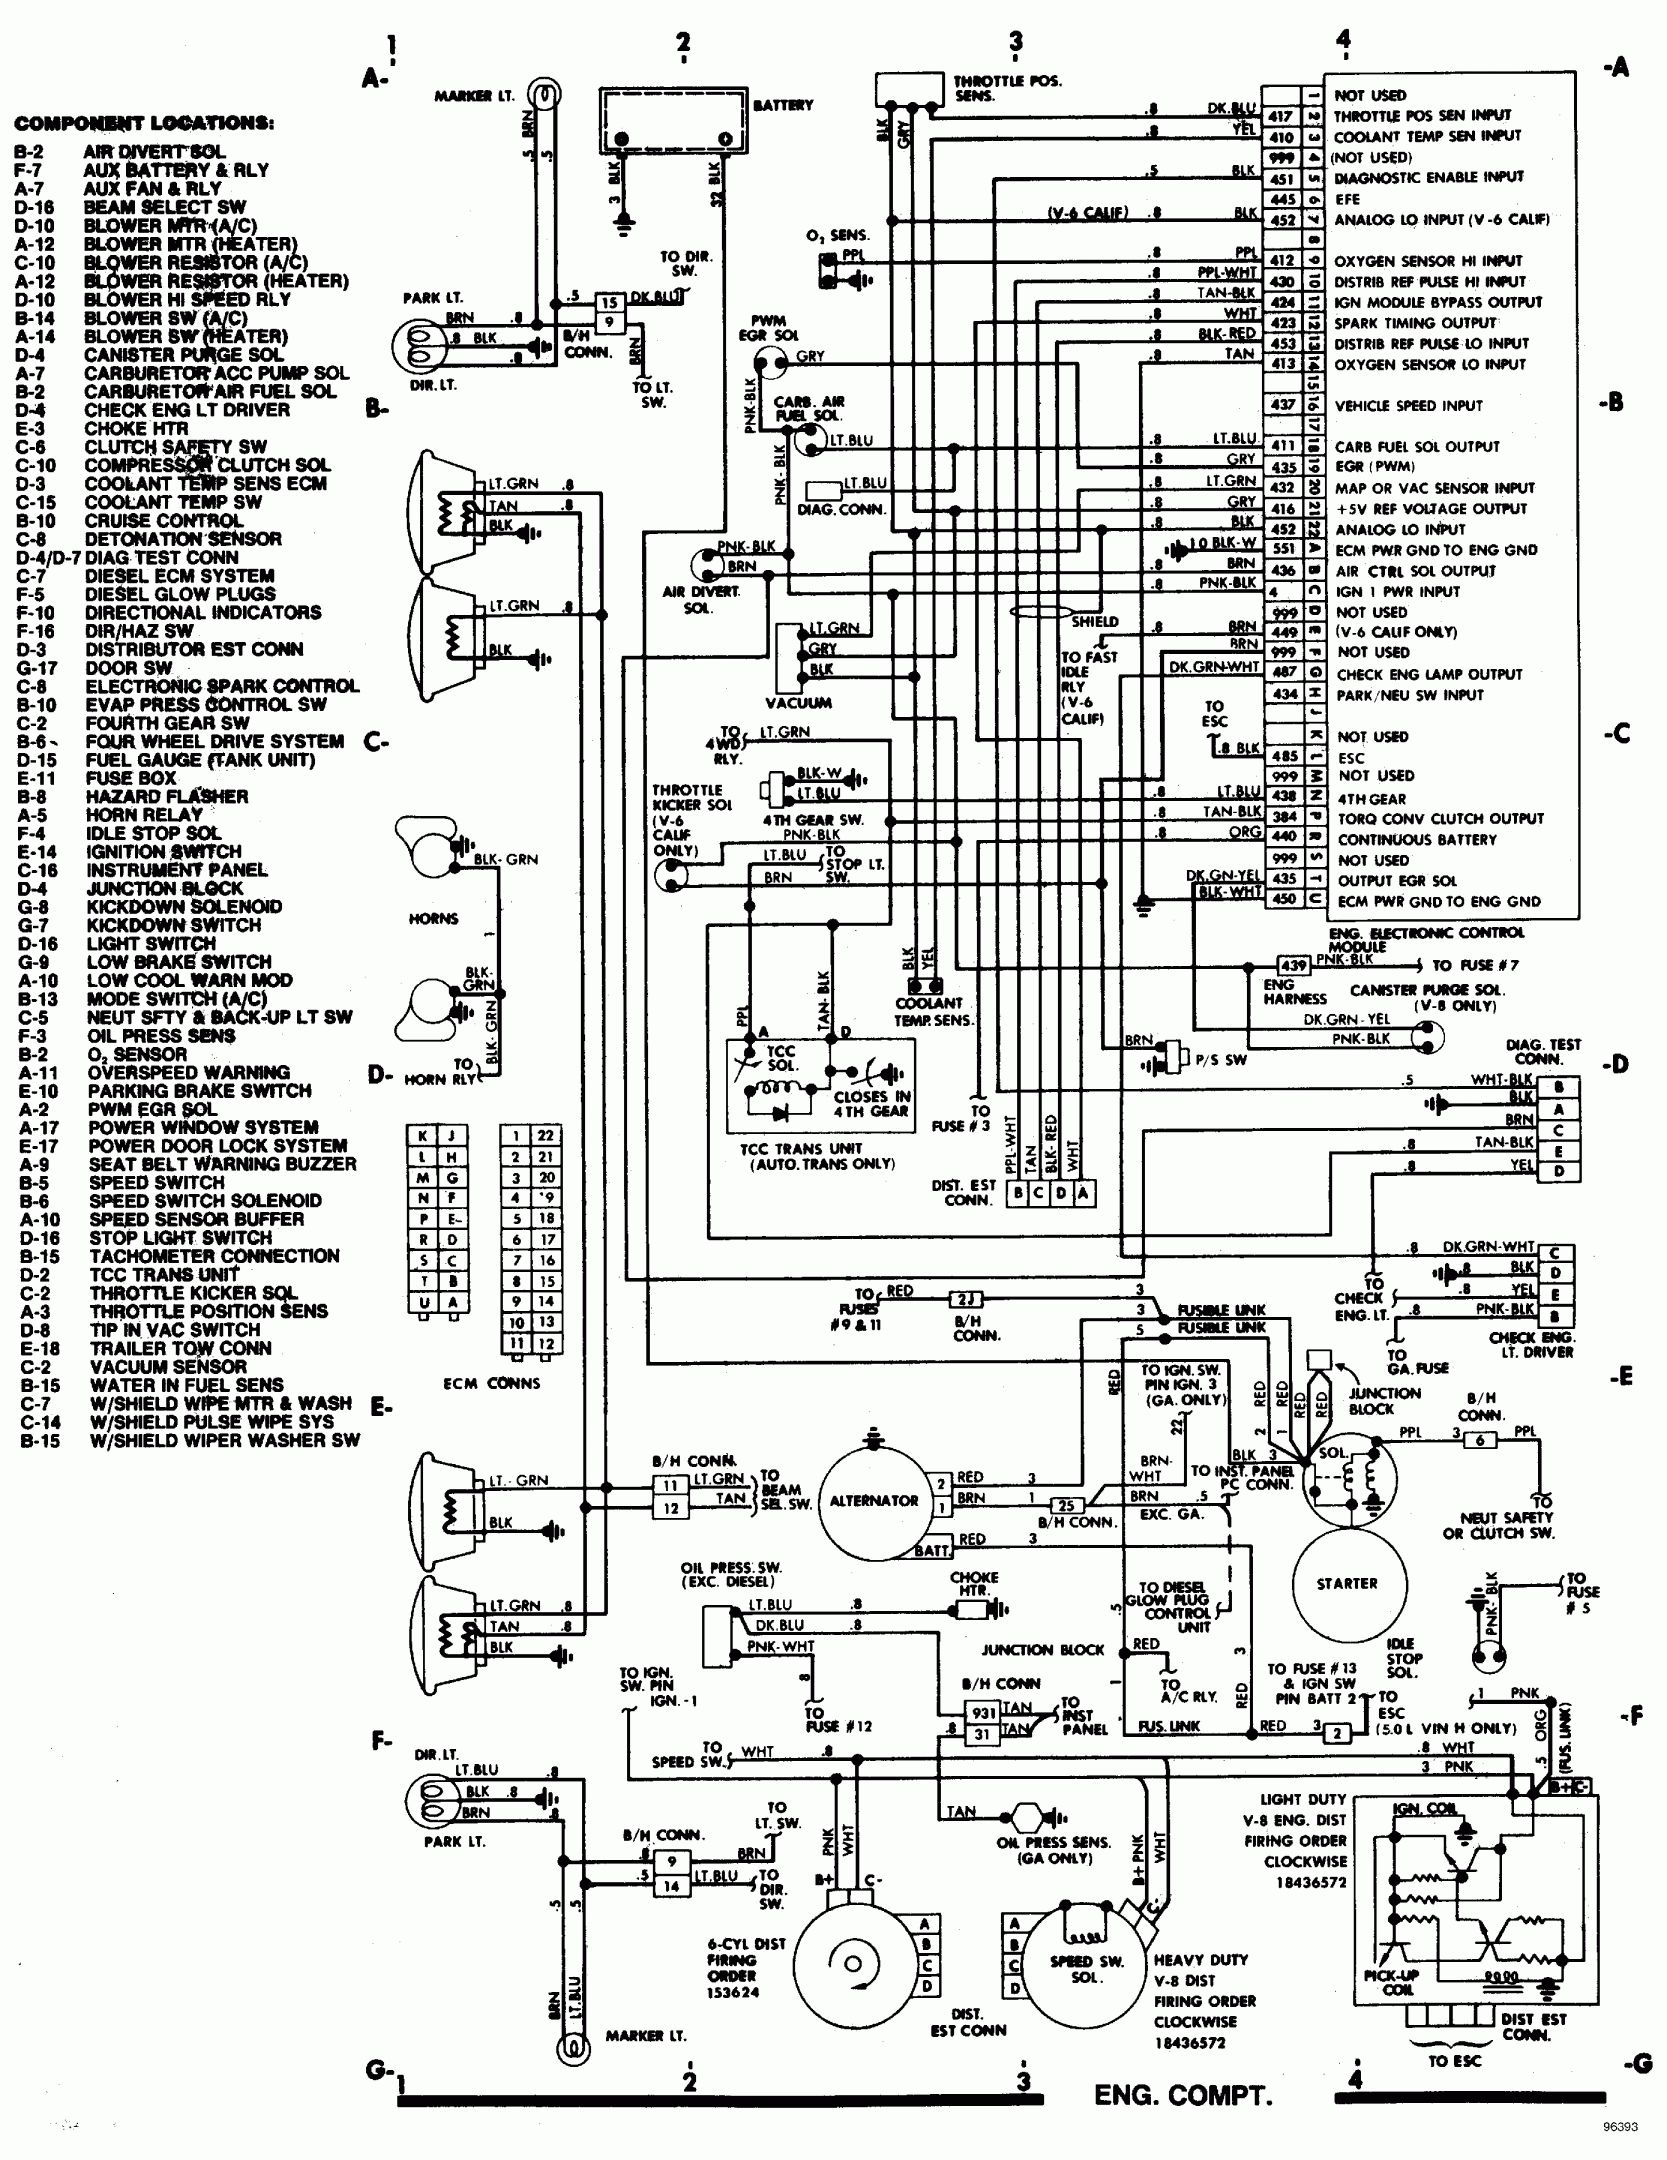 15 C20 Wiring Diagram Electrical Electrical Wiring Diagram Chevy Trucks 1984 Chevy Truck